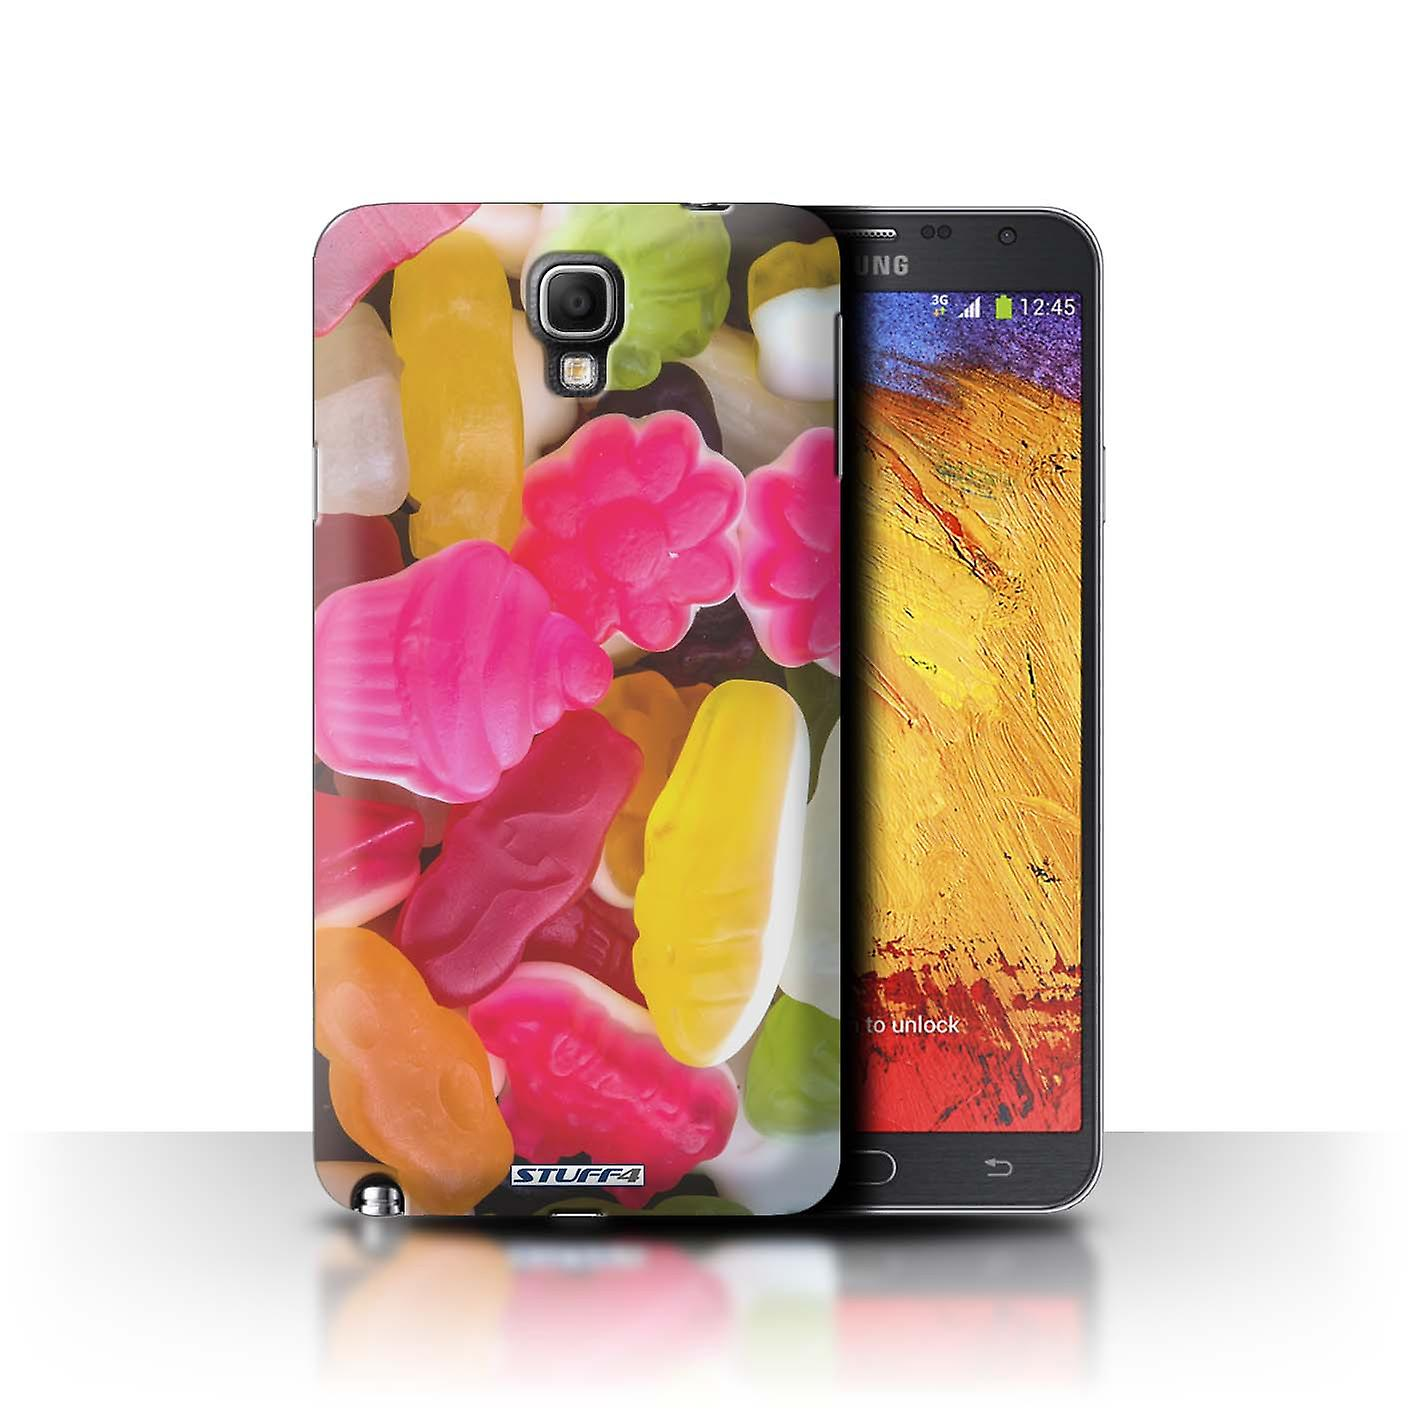 STUFF4 Case/Cover for Samsung Galaxy Note 3  Neo/Marshmallow/Jelly/Confectionery